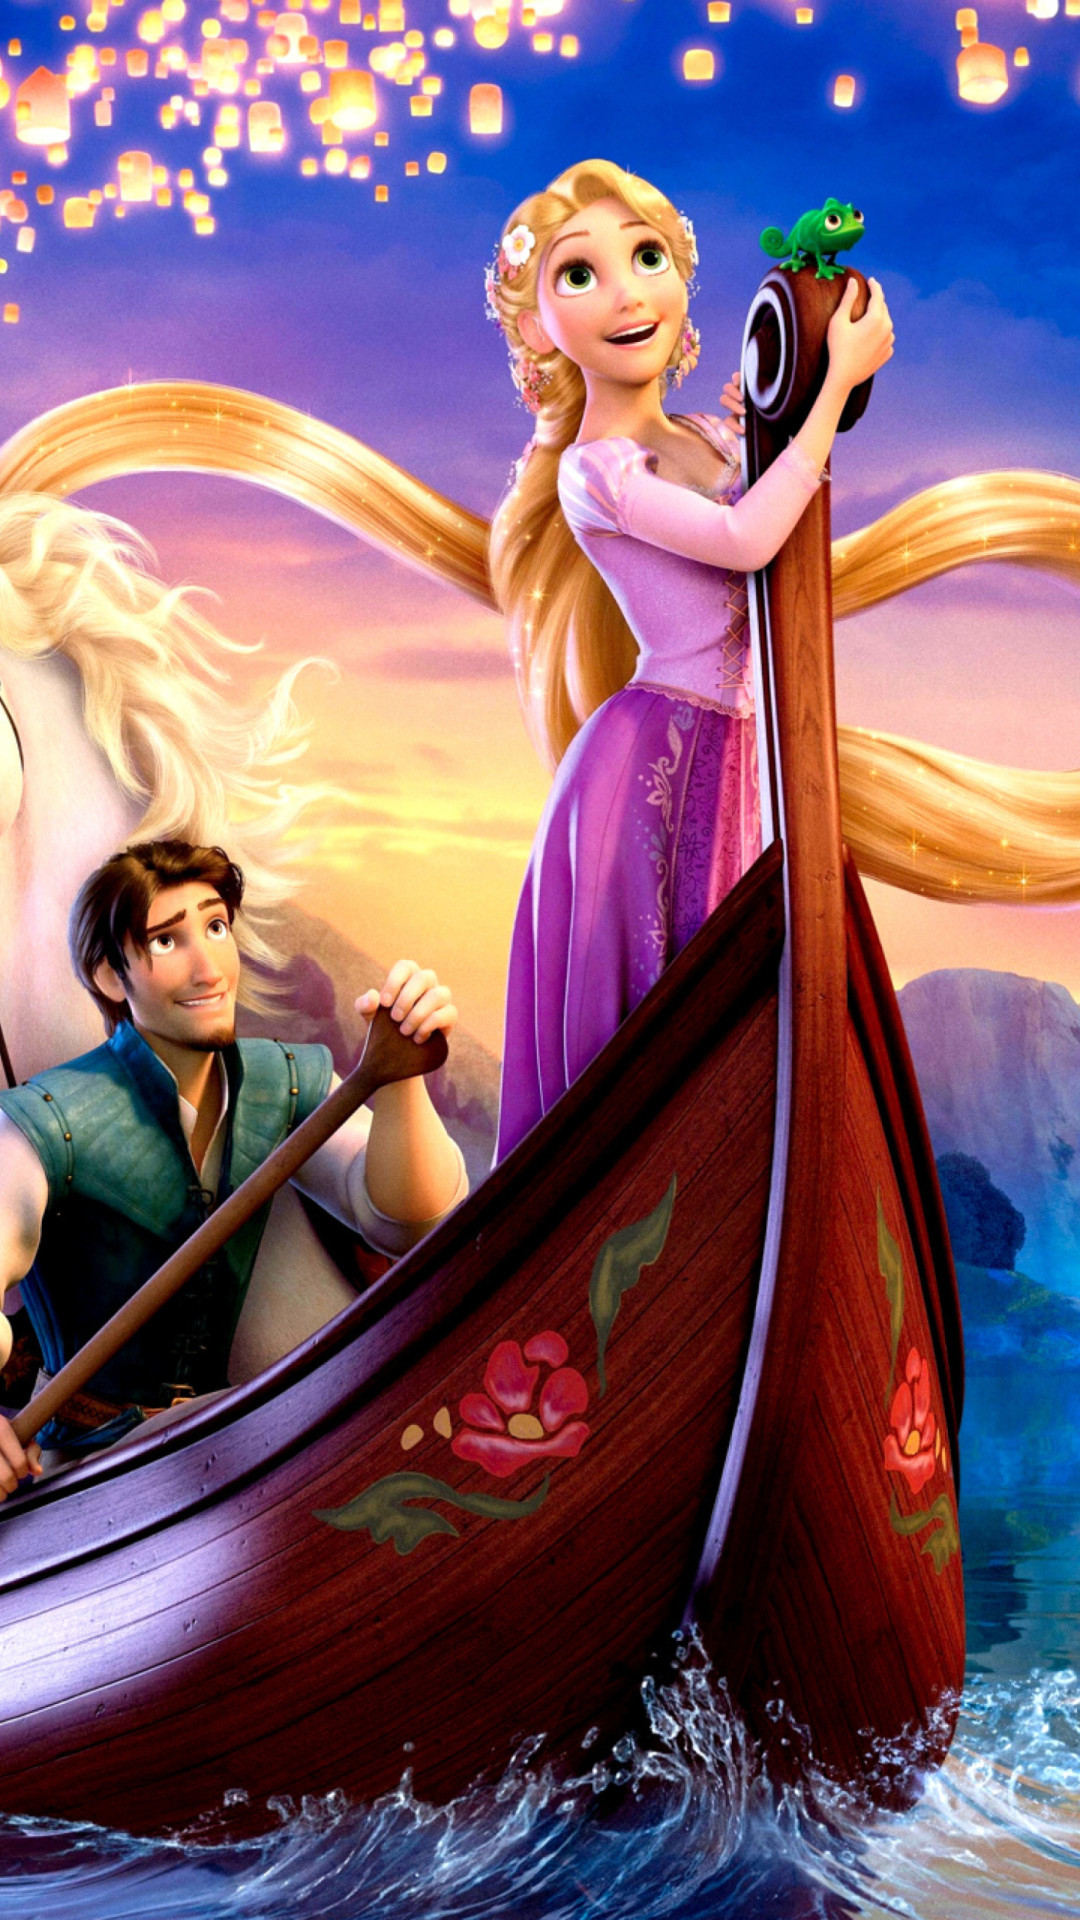 Tangled wallpapers 62 images - Tangled wallpaper ...